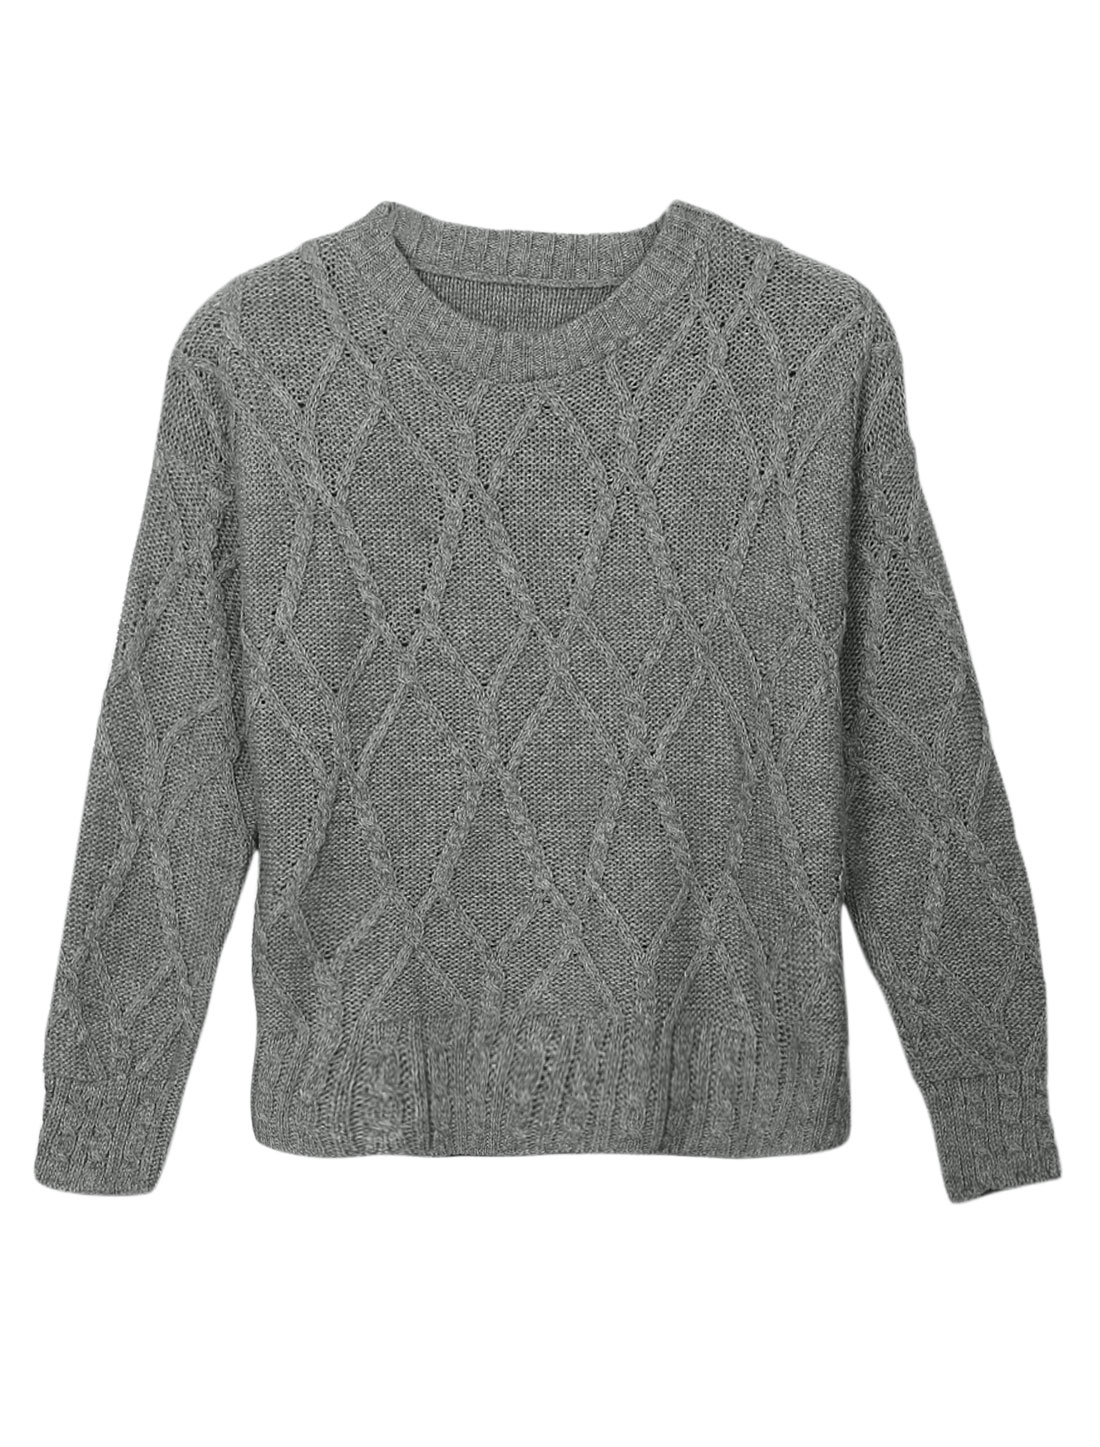 Ladies Light Gray Slipover Textured Argyle Design Round Neck Sweater XS